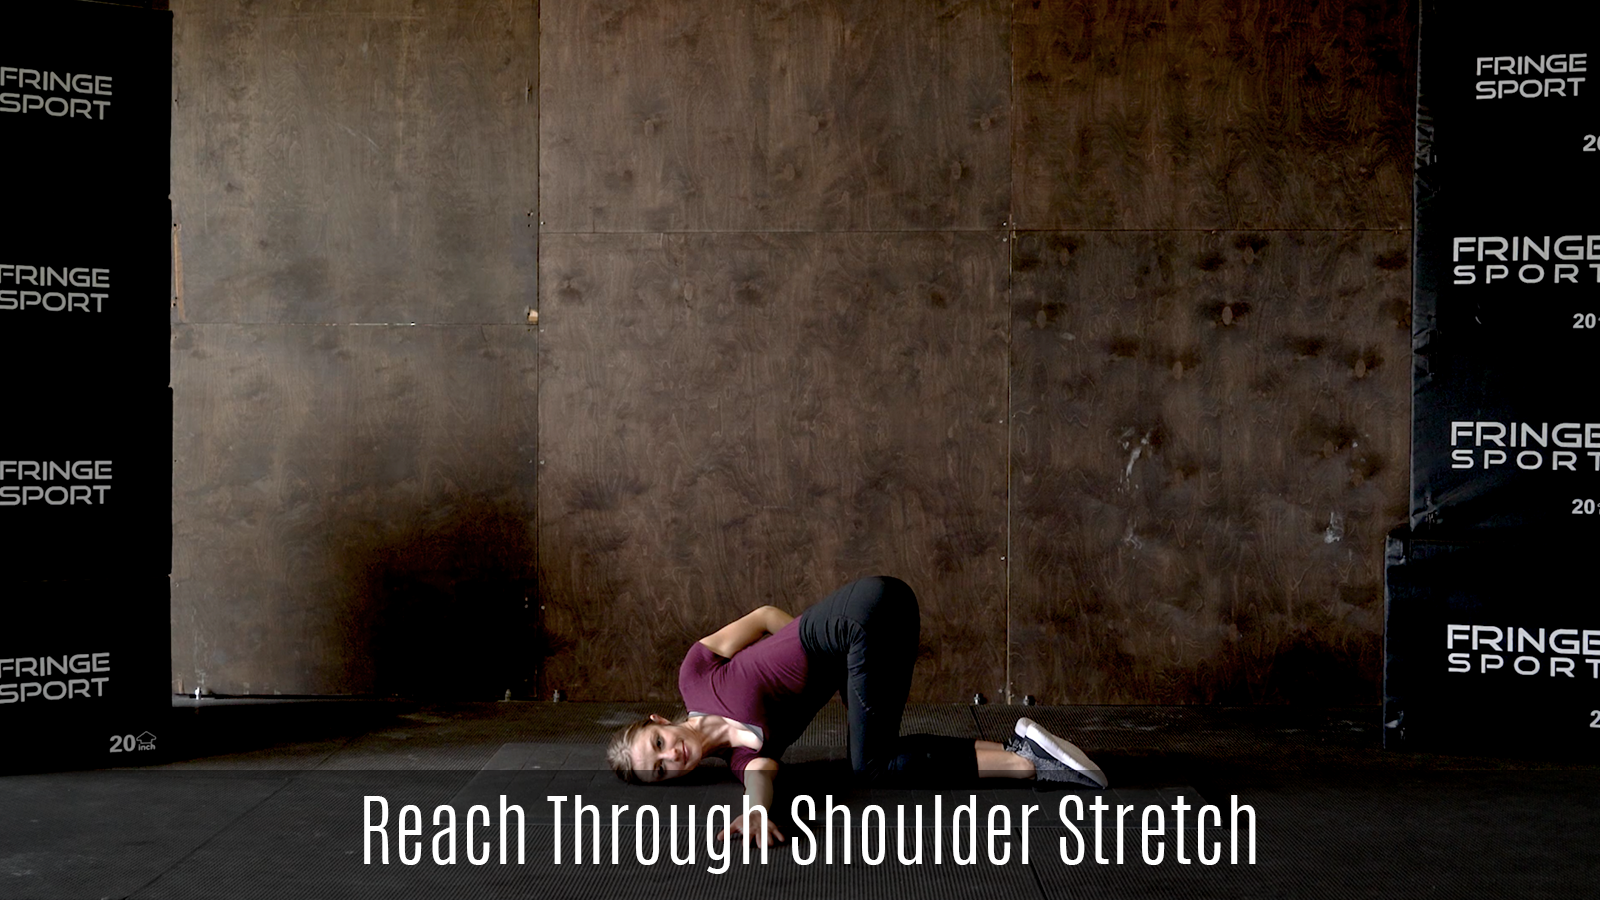 reach through shoulder stretch demo lying on floor